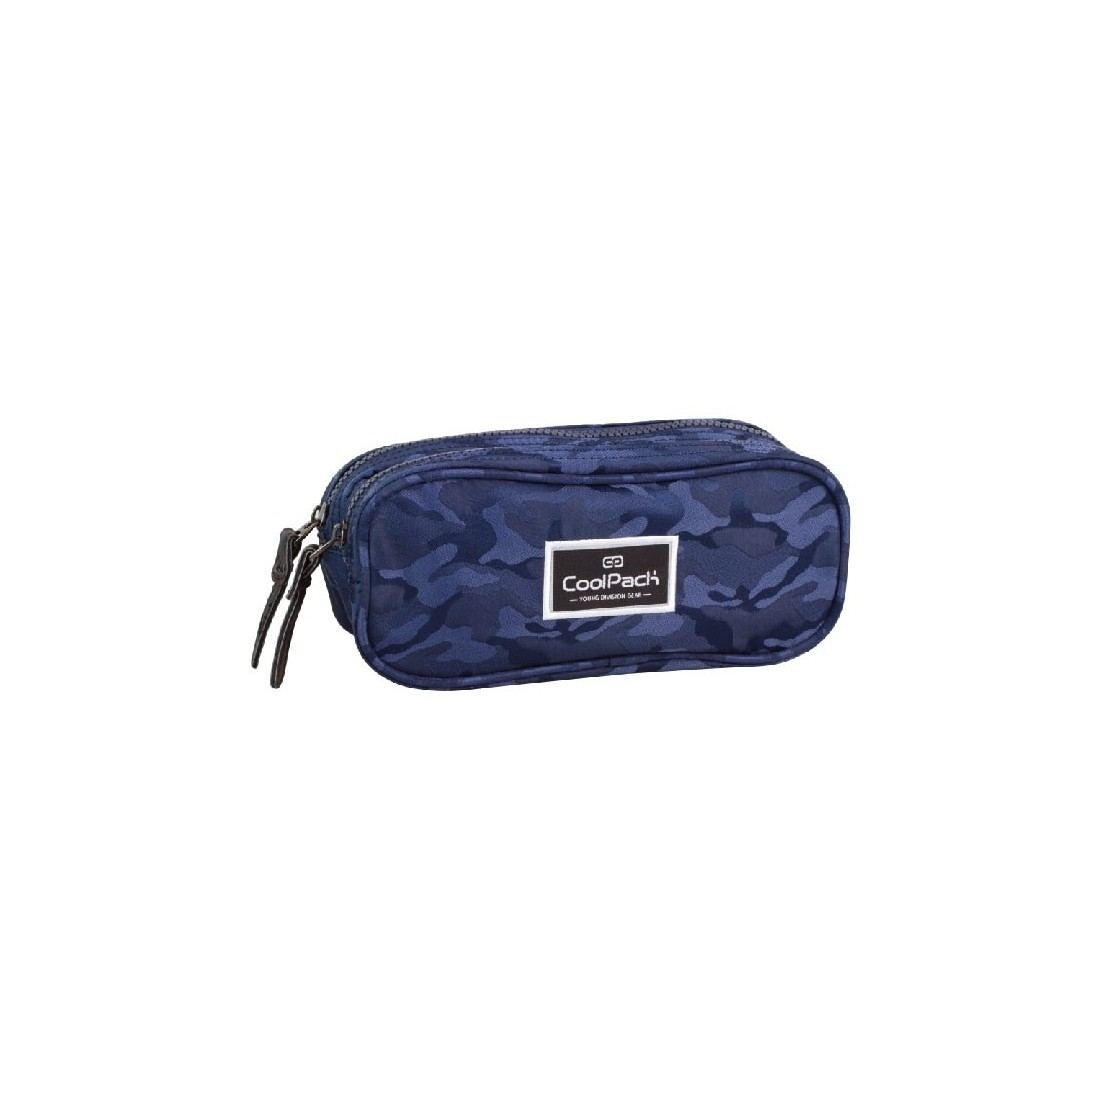 Saszetka podwójna CoolPack CLEVER JACQUARD ARMY BLUE CP 717 - plecak-tornister.pl